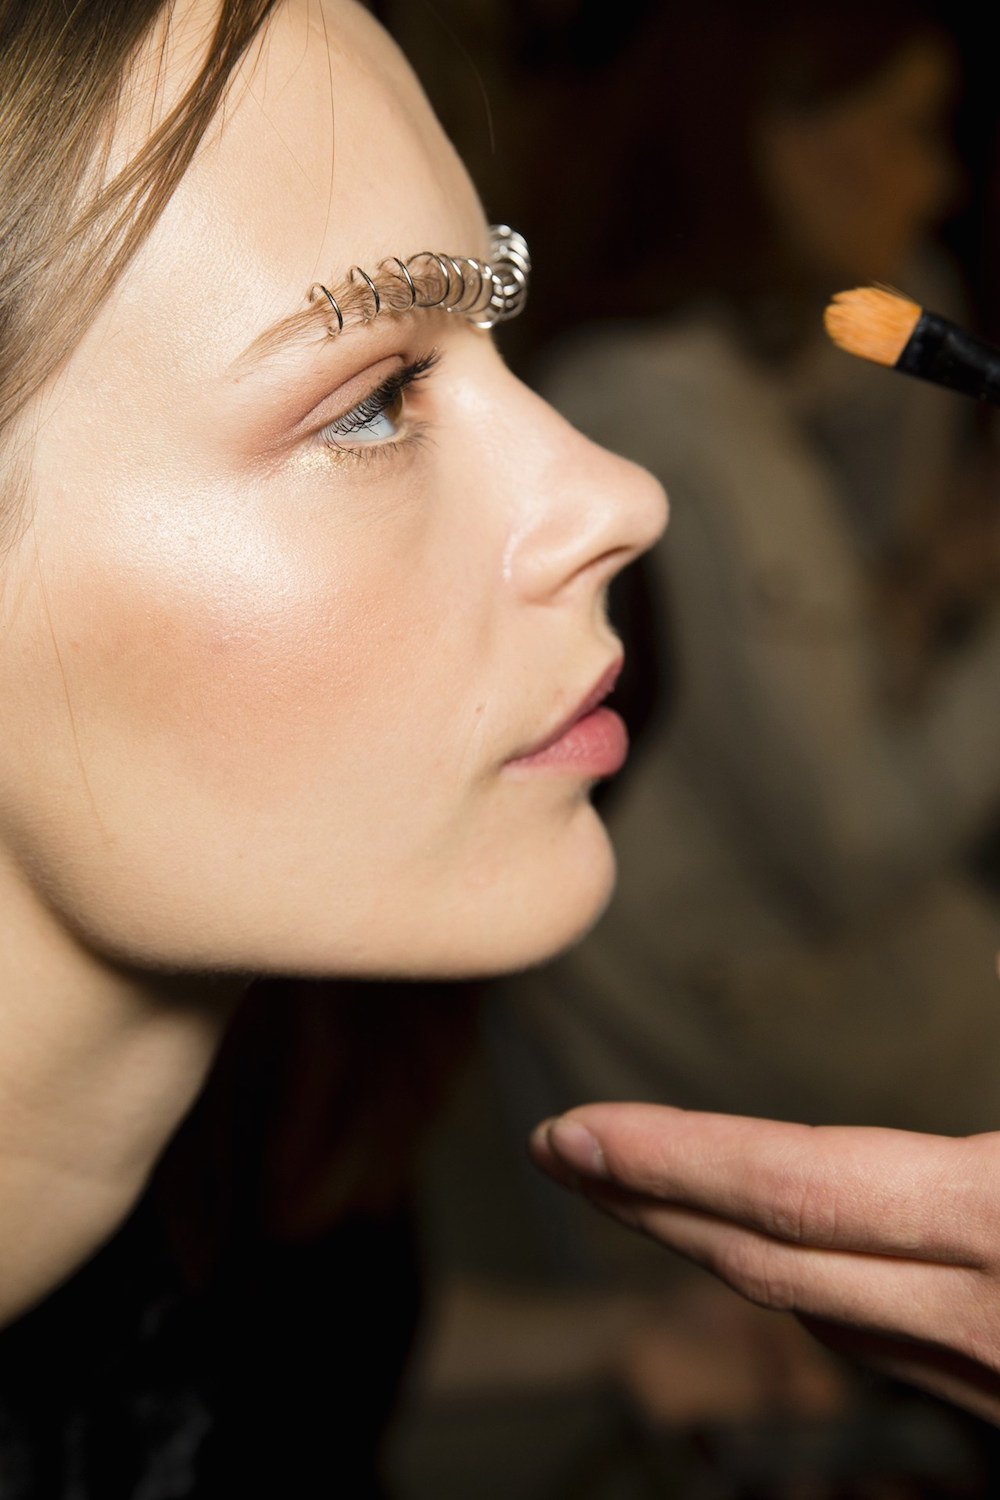 silver-rodarte-ss15-runway-beauty-piercing-fashion-oracle-fox